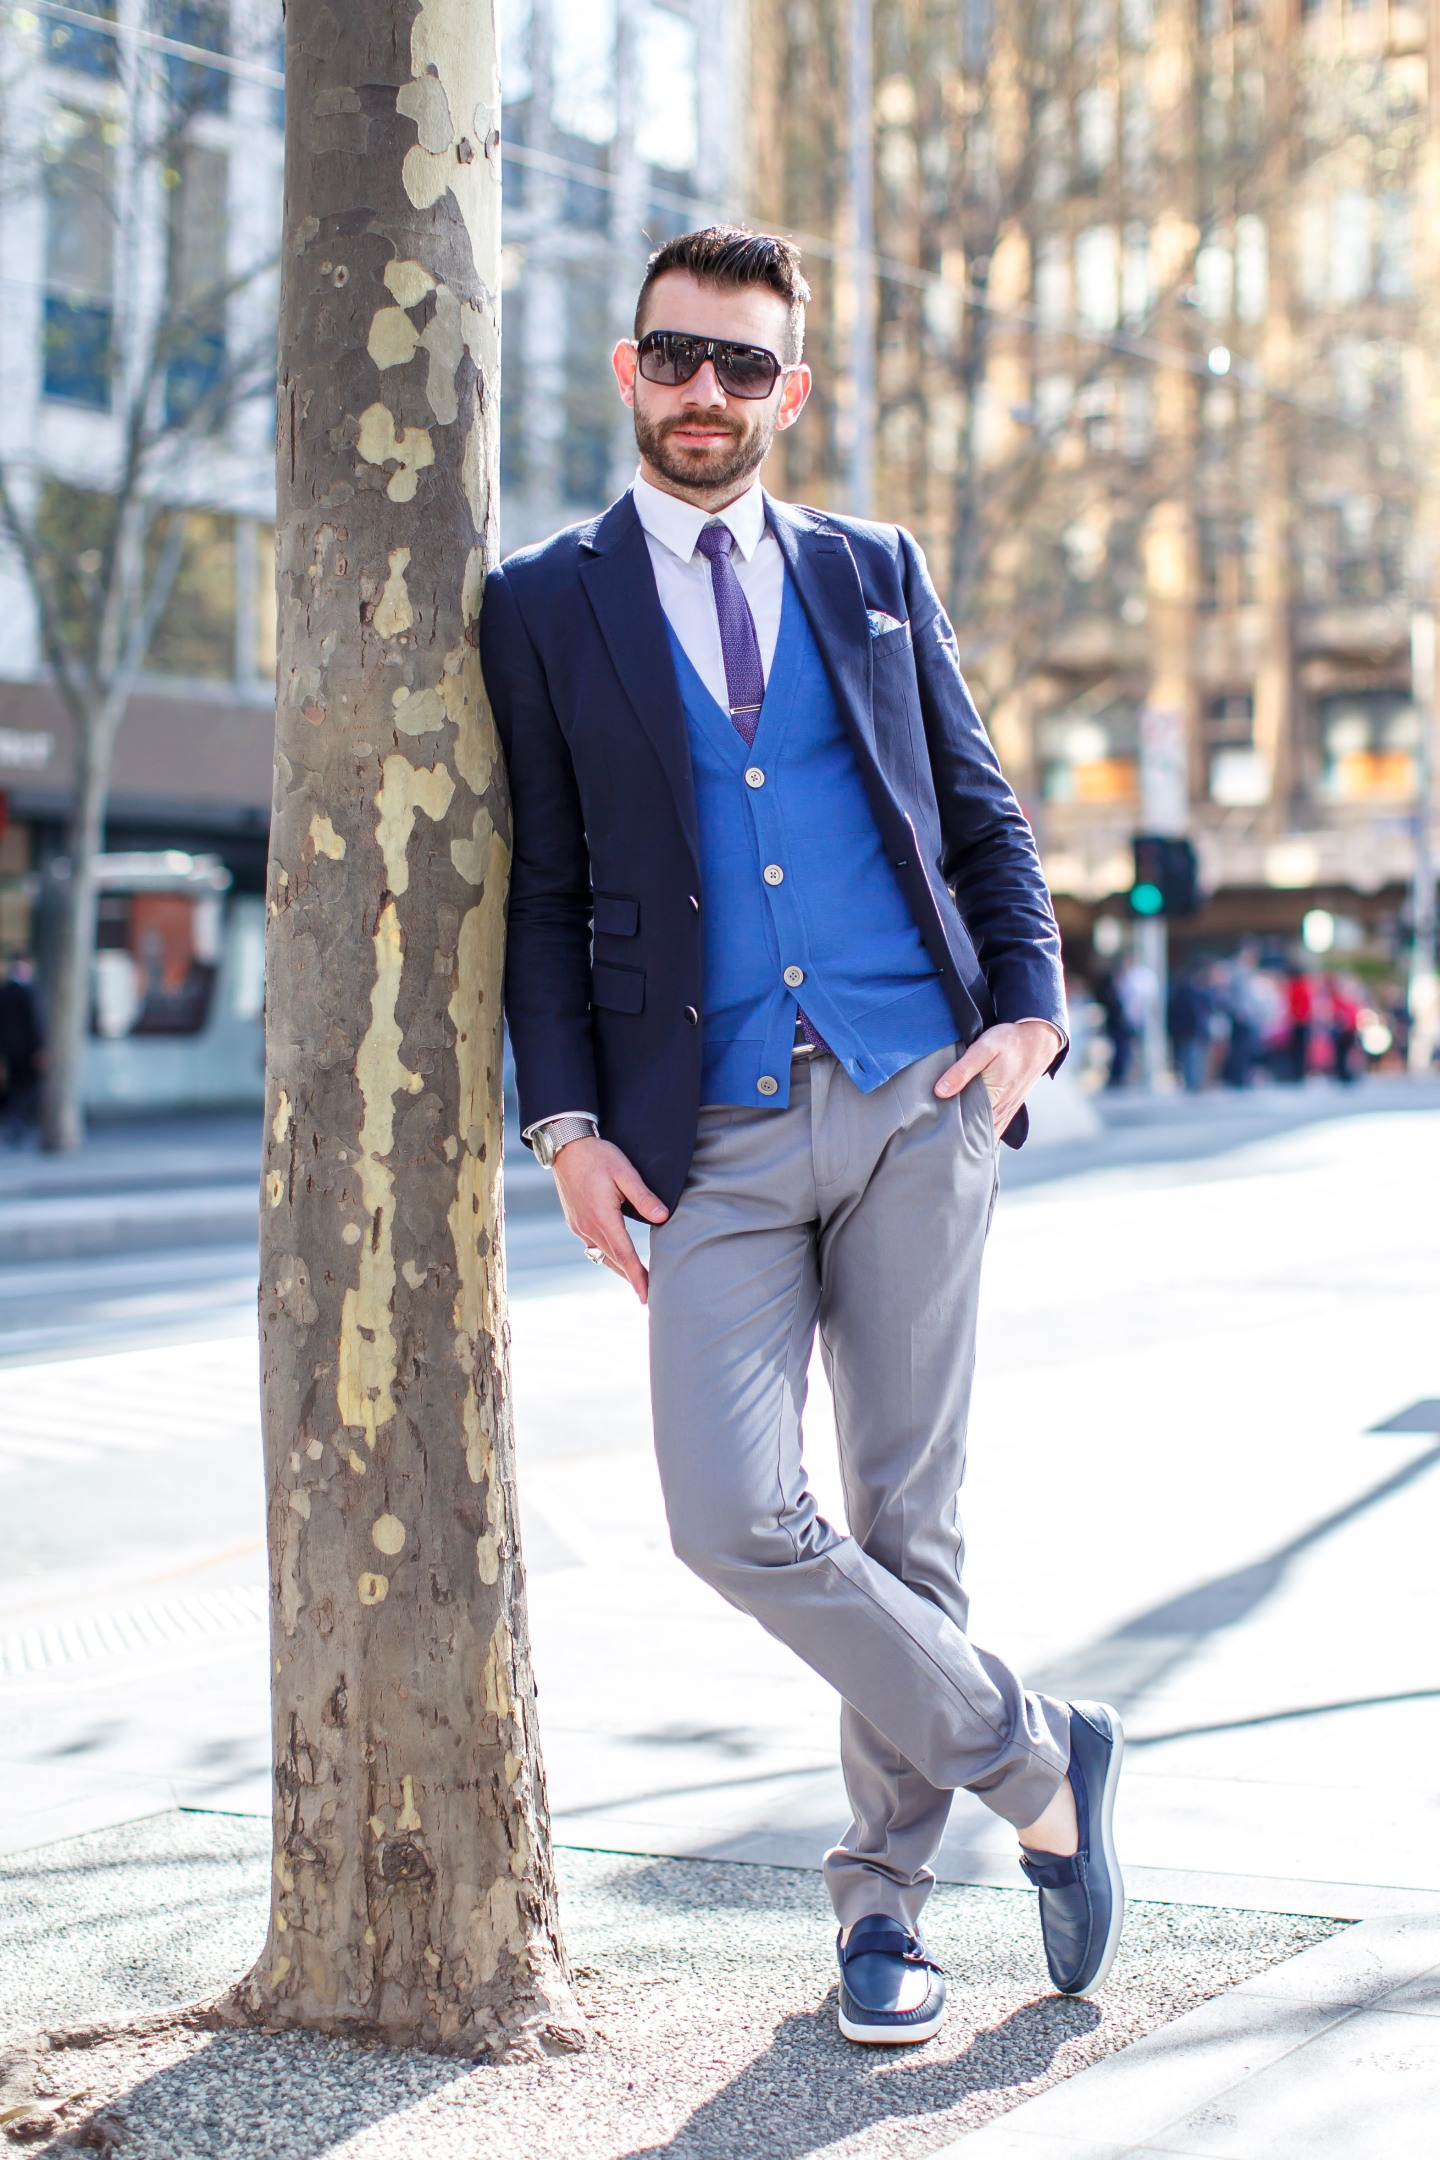 Blazer, cardigan, shirt, chinos, boat shoes, ties, pocket square, men's wear, street style, your ensemble, yourensemble, yourensemble.com